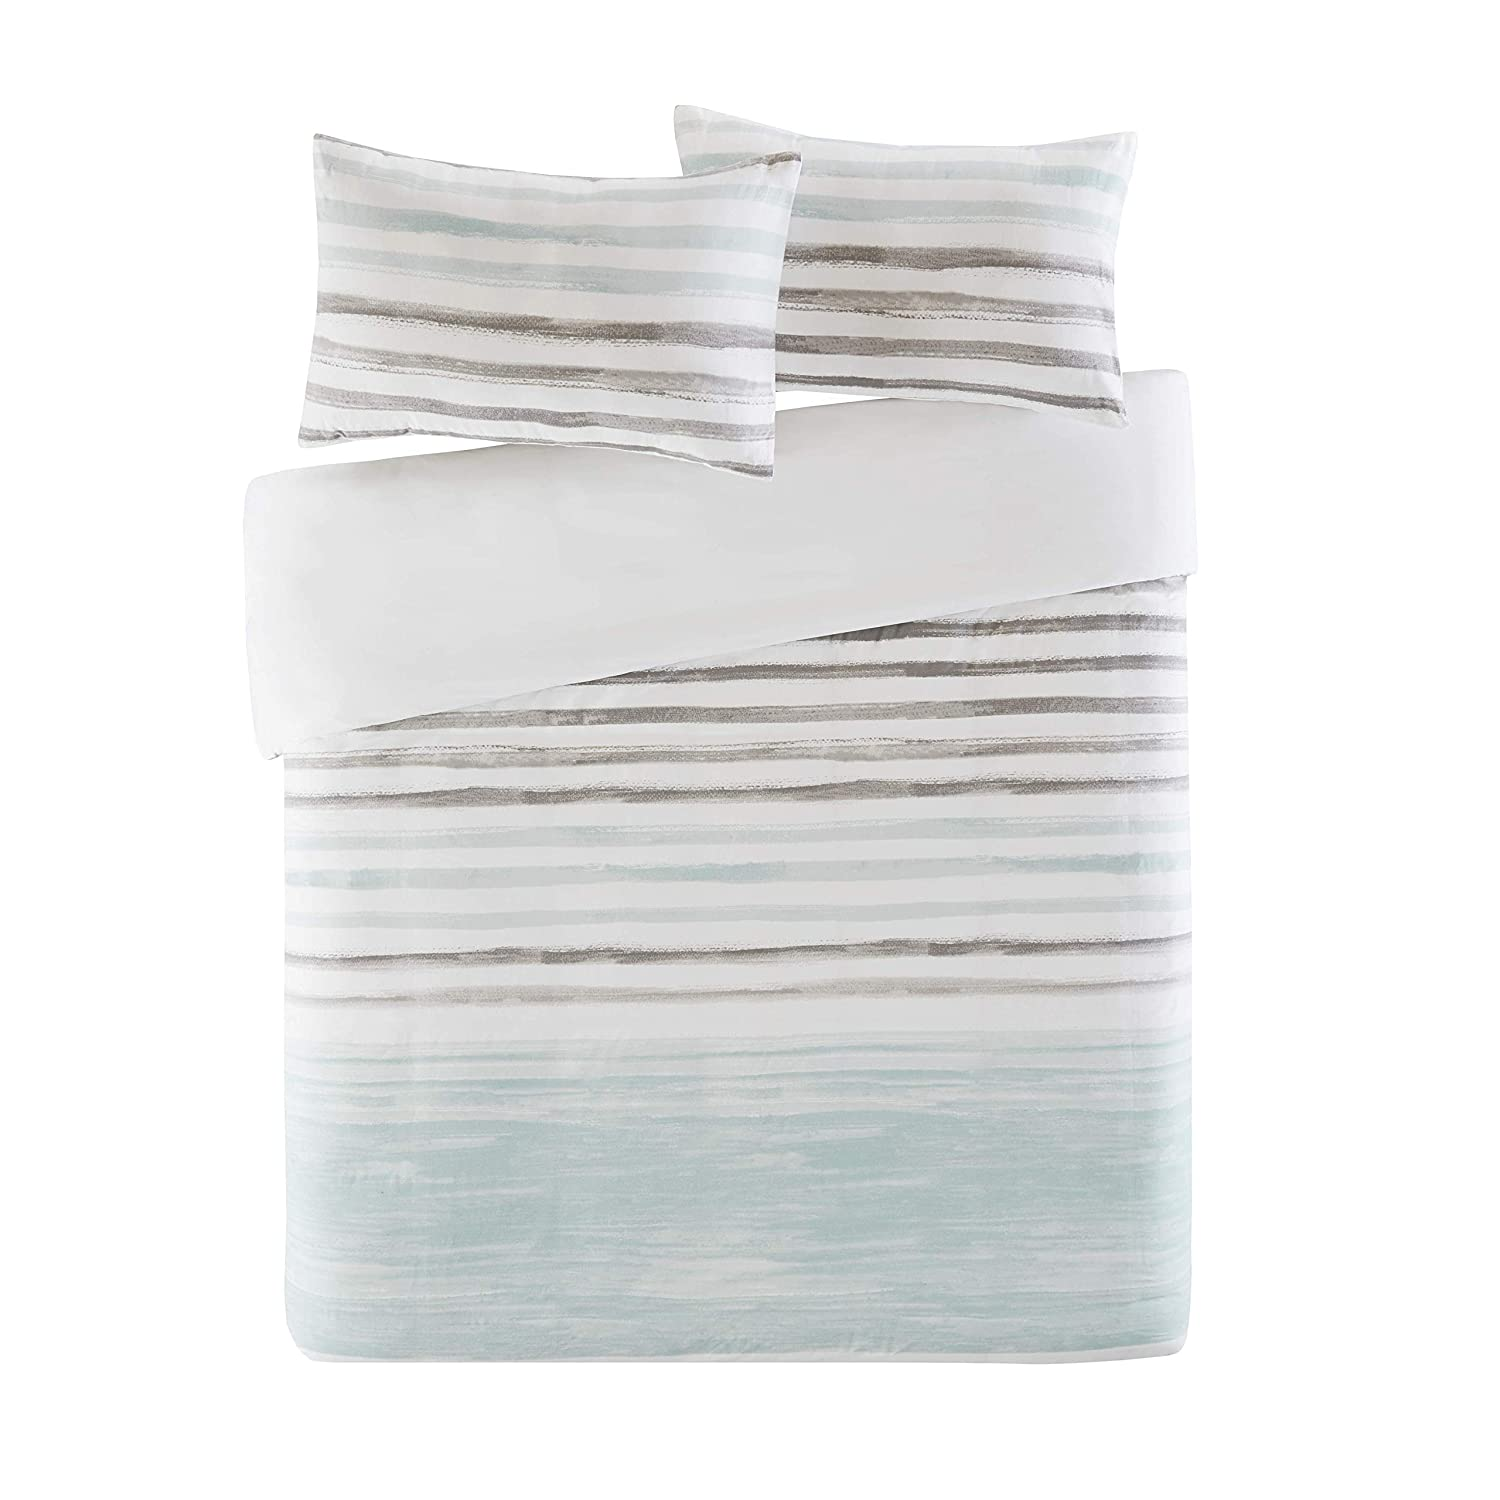 SCM Marina Duvet Cover and Pillowcase Set, Modern Take on the Coastal Stripe, Watercolor Motif, Luxury Trendy Quilt Bedding Set, Multi-Blue (Double)